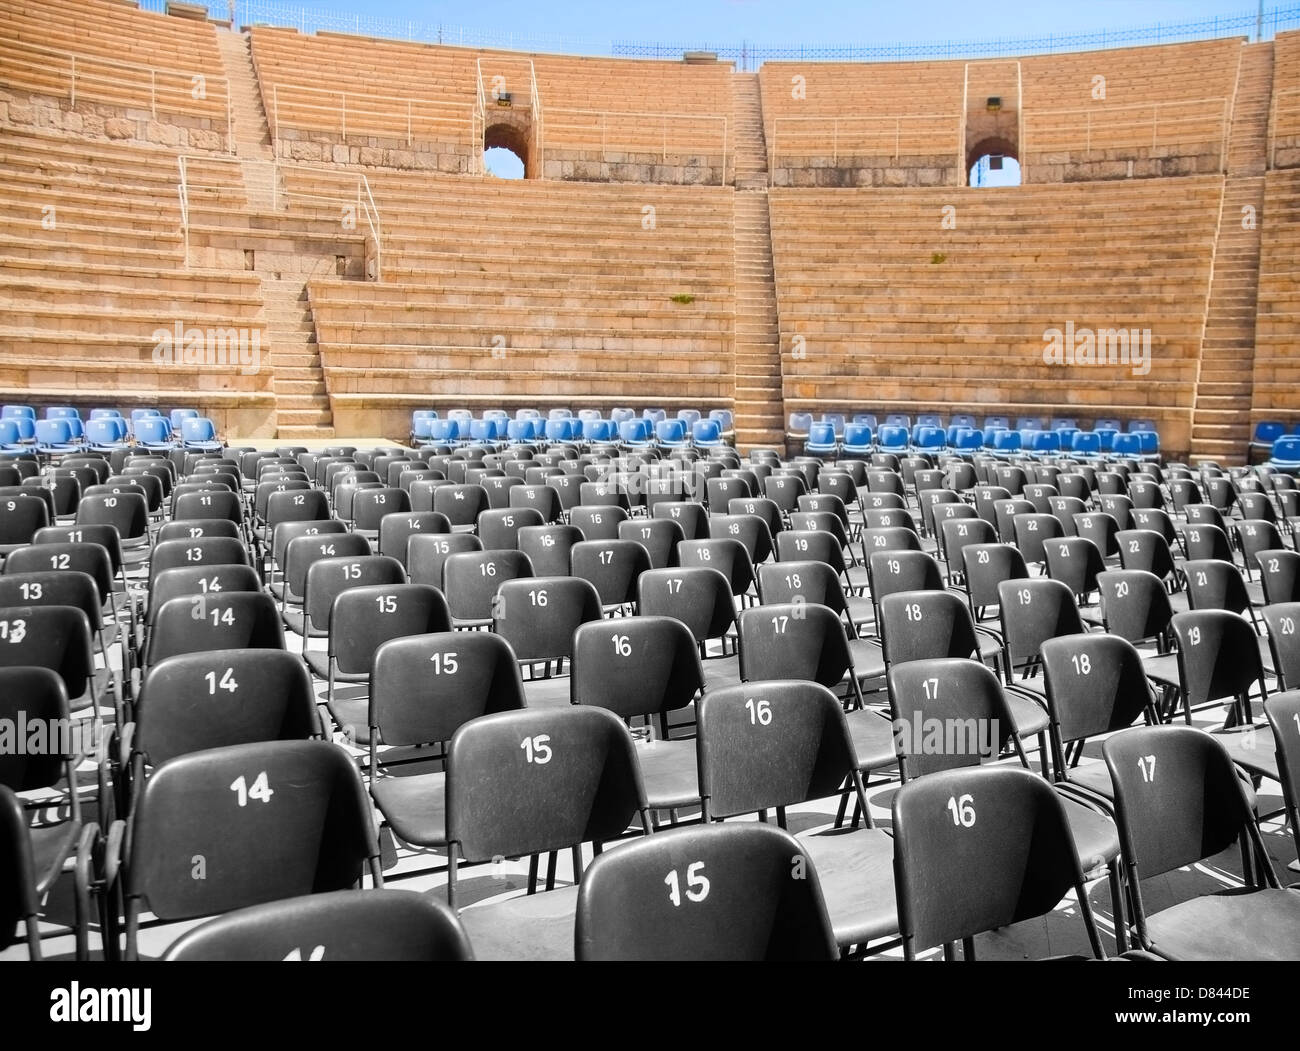 Modern plastic seats in Roman ancient amphitheater - Stock Image